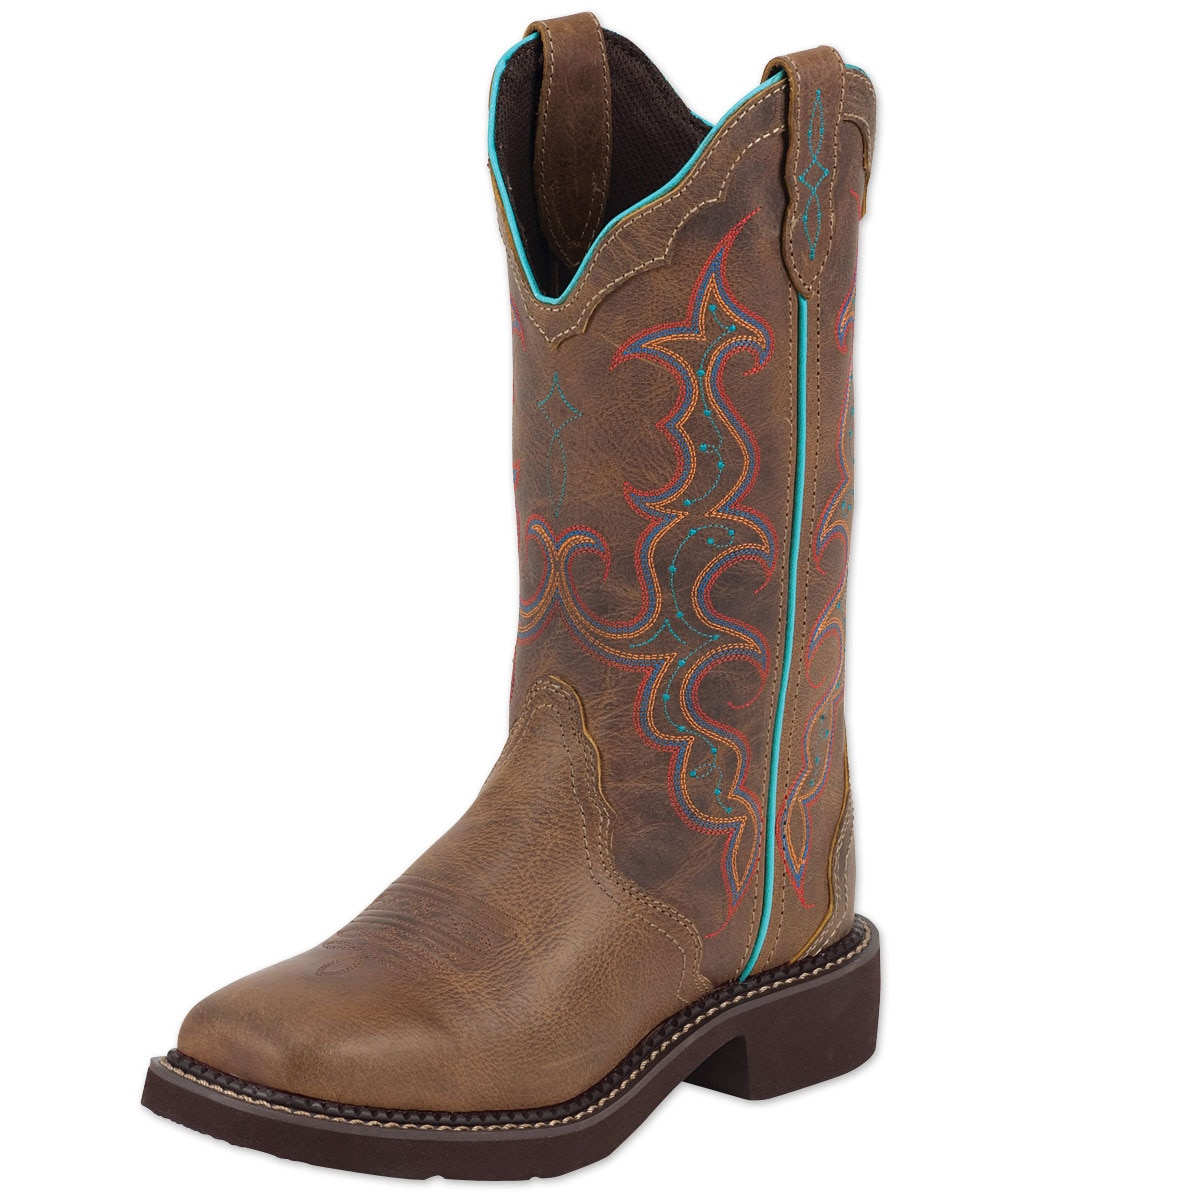 Justin Women's Gypsy Collection - Broad Square Toe